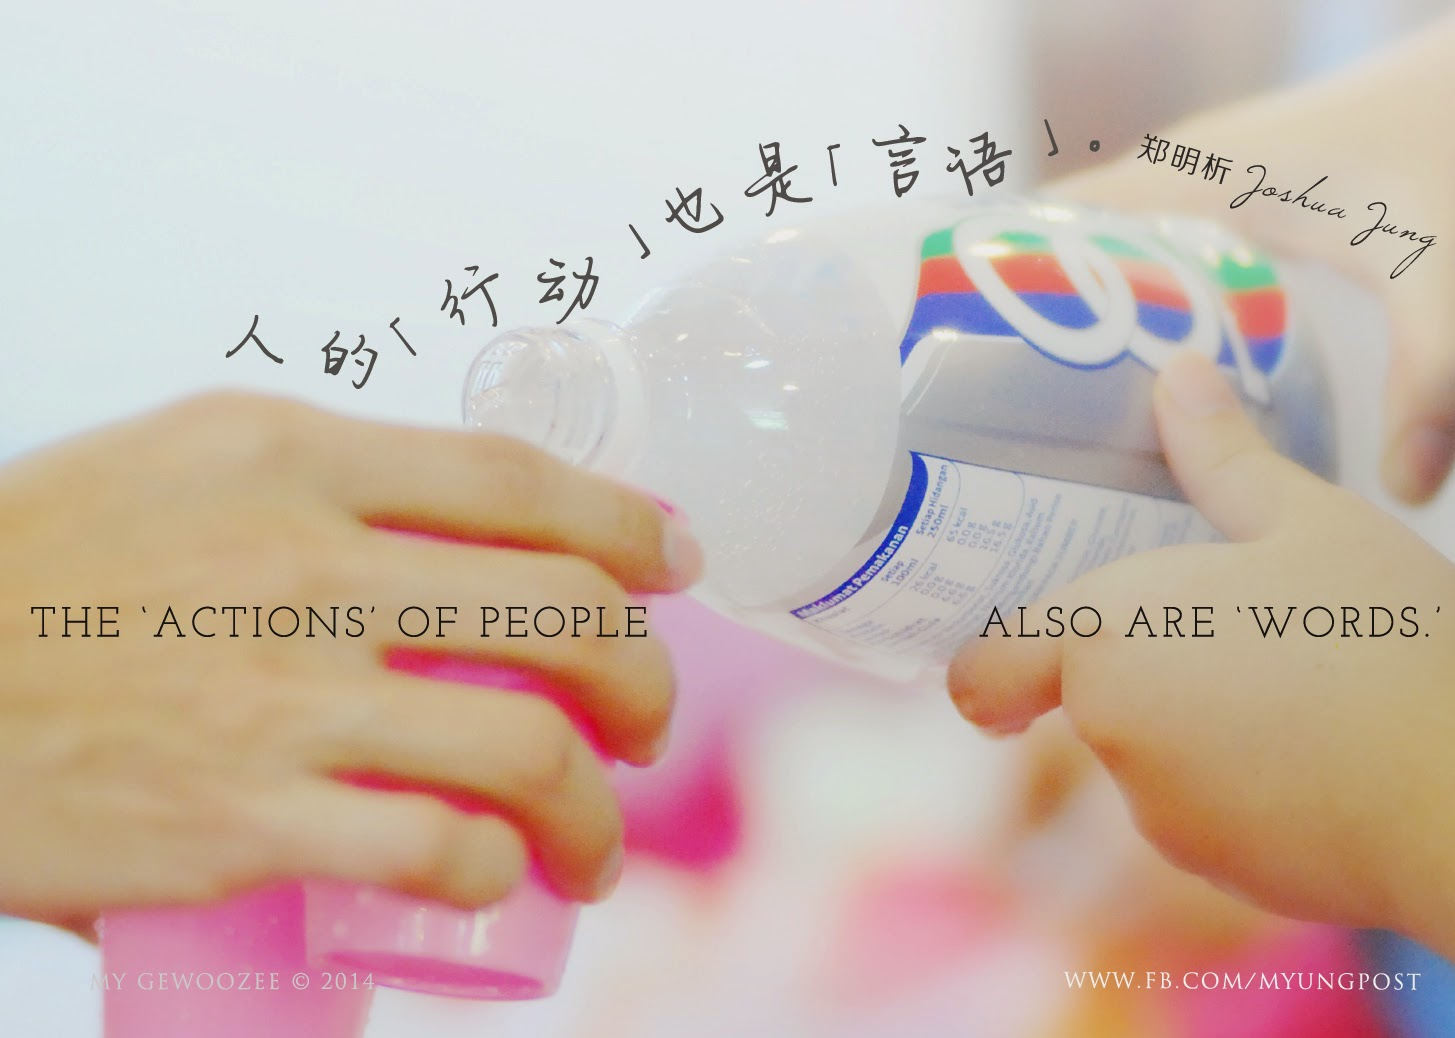 郑明析,摄理,月明洞,行动,言语,水,杯子,Joshua Jung, Providence, Wolmyeong Dong, action, words, water, cup